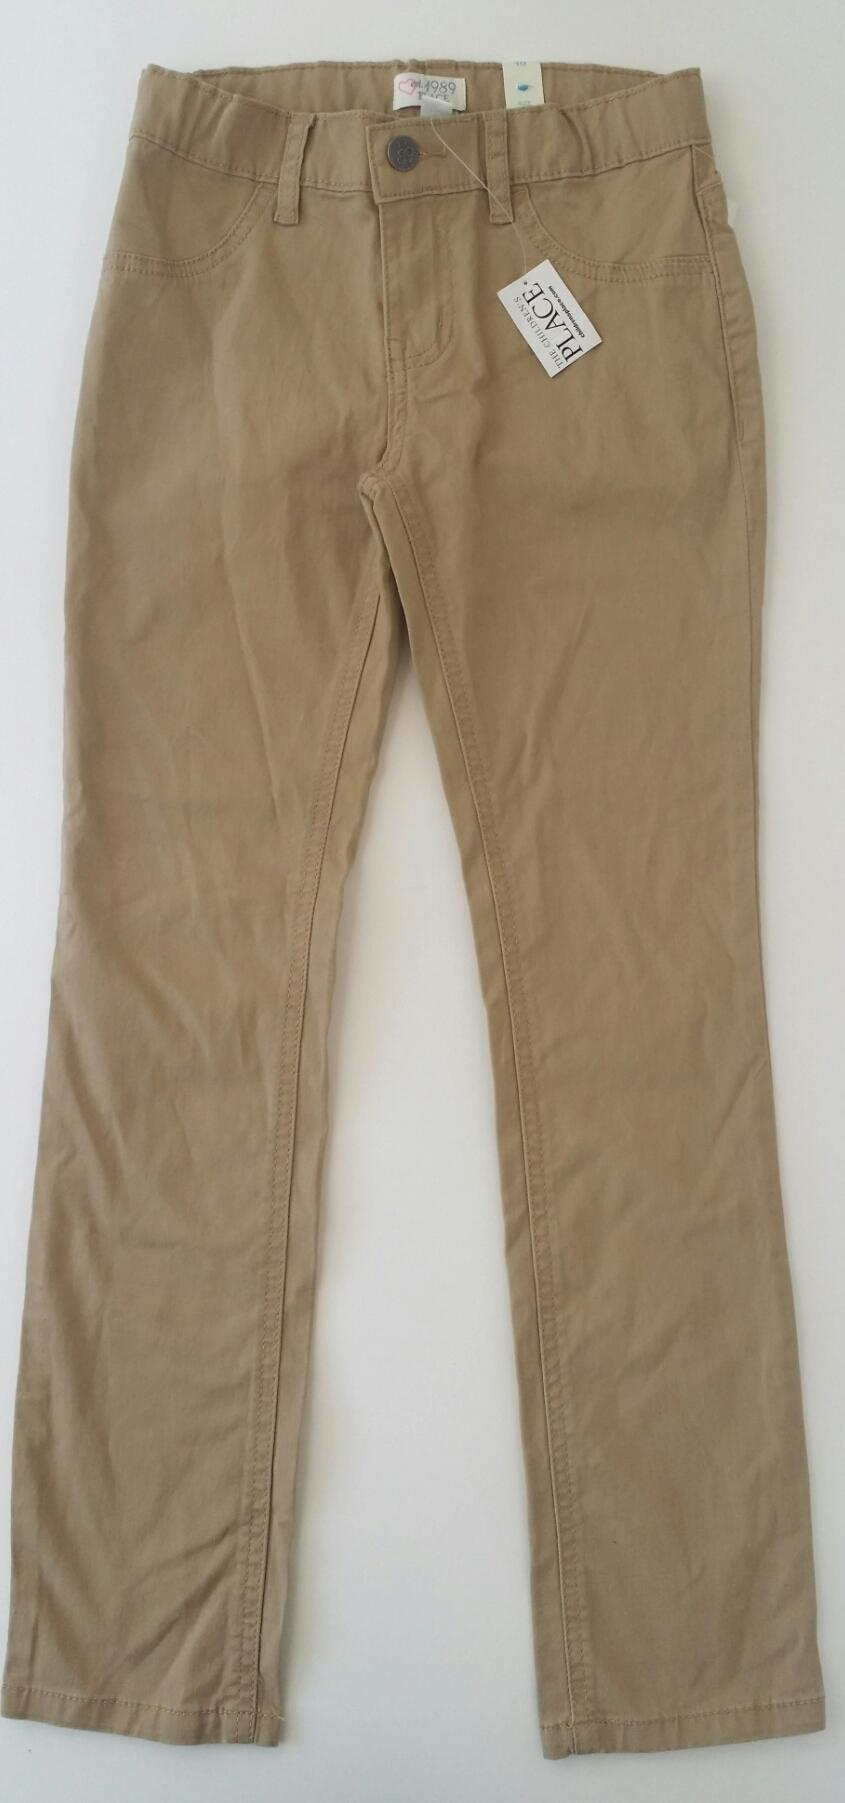 Childrens-Place-10-YEARS-Khaki-Pants_2092847A.jpg